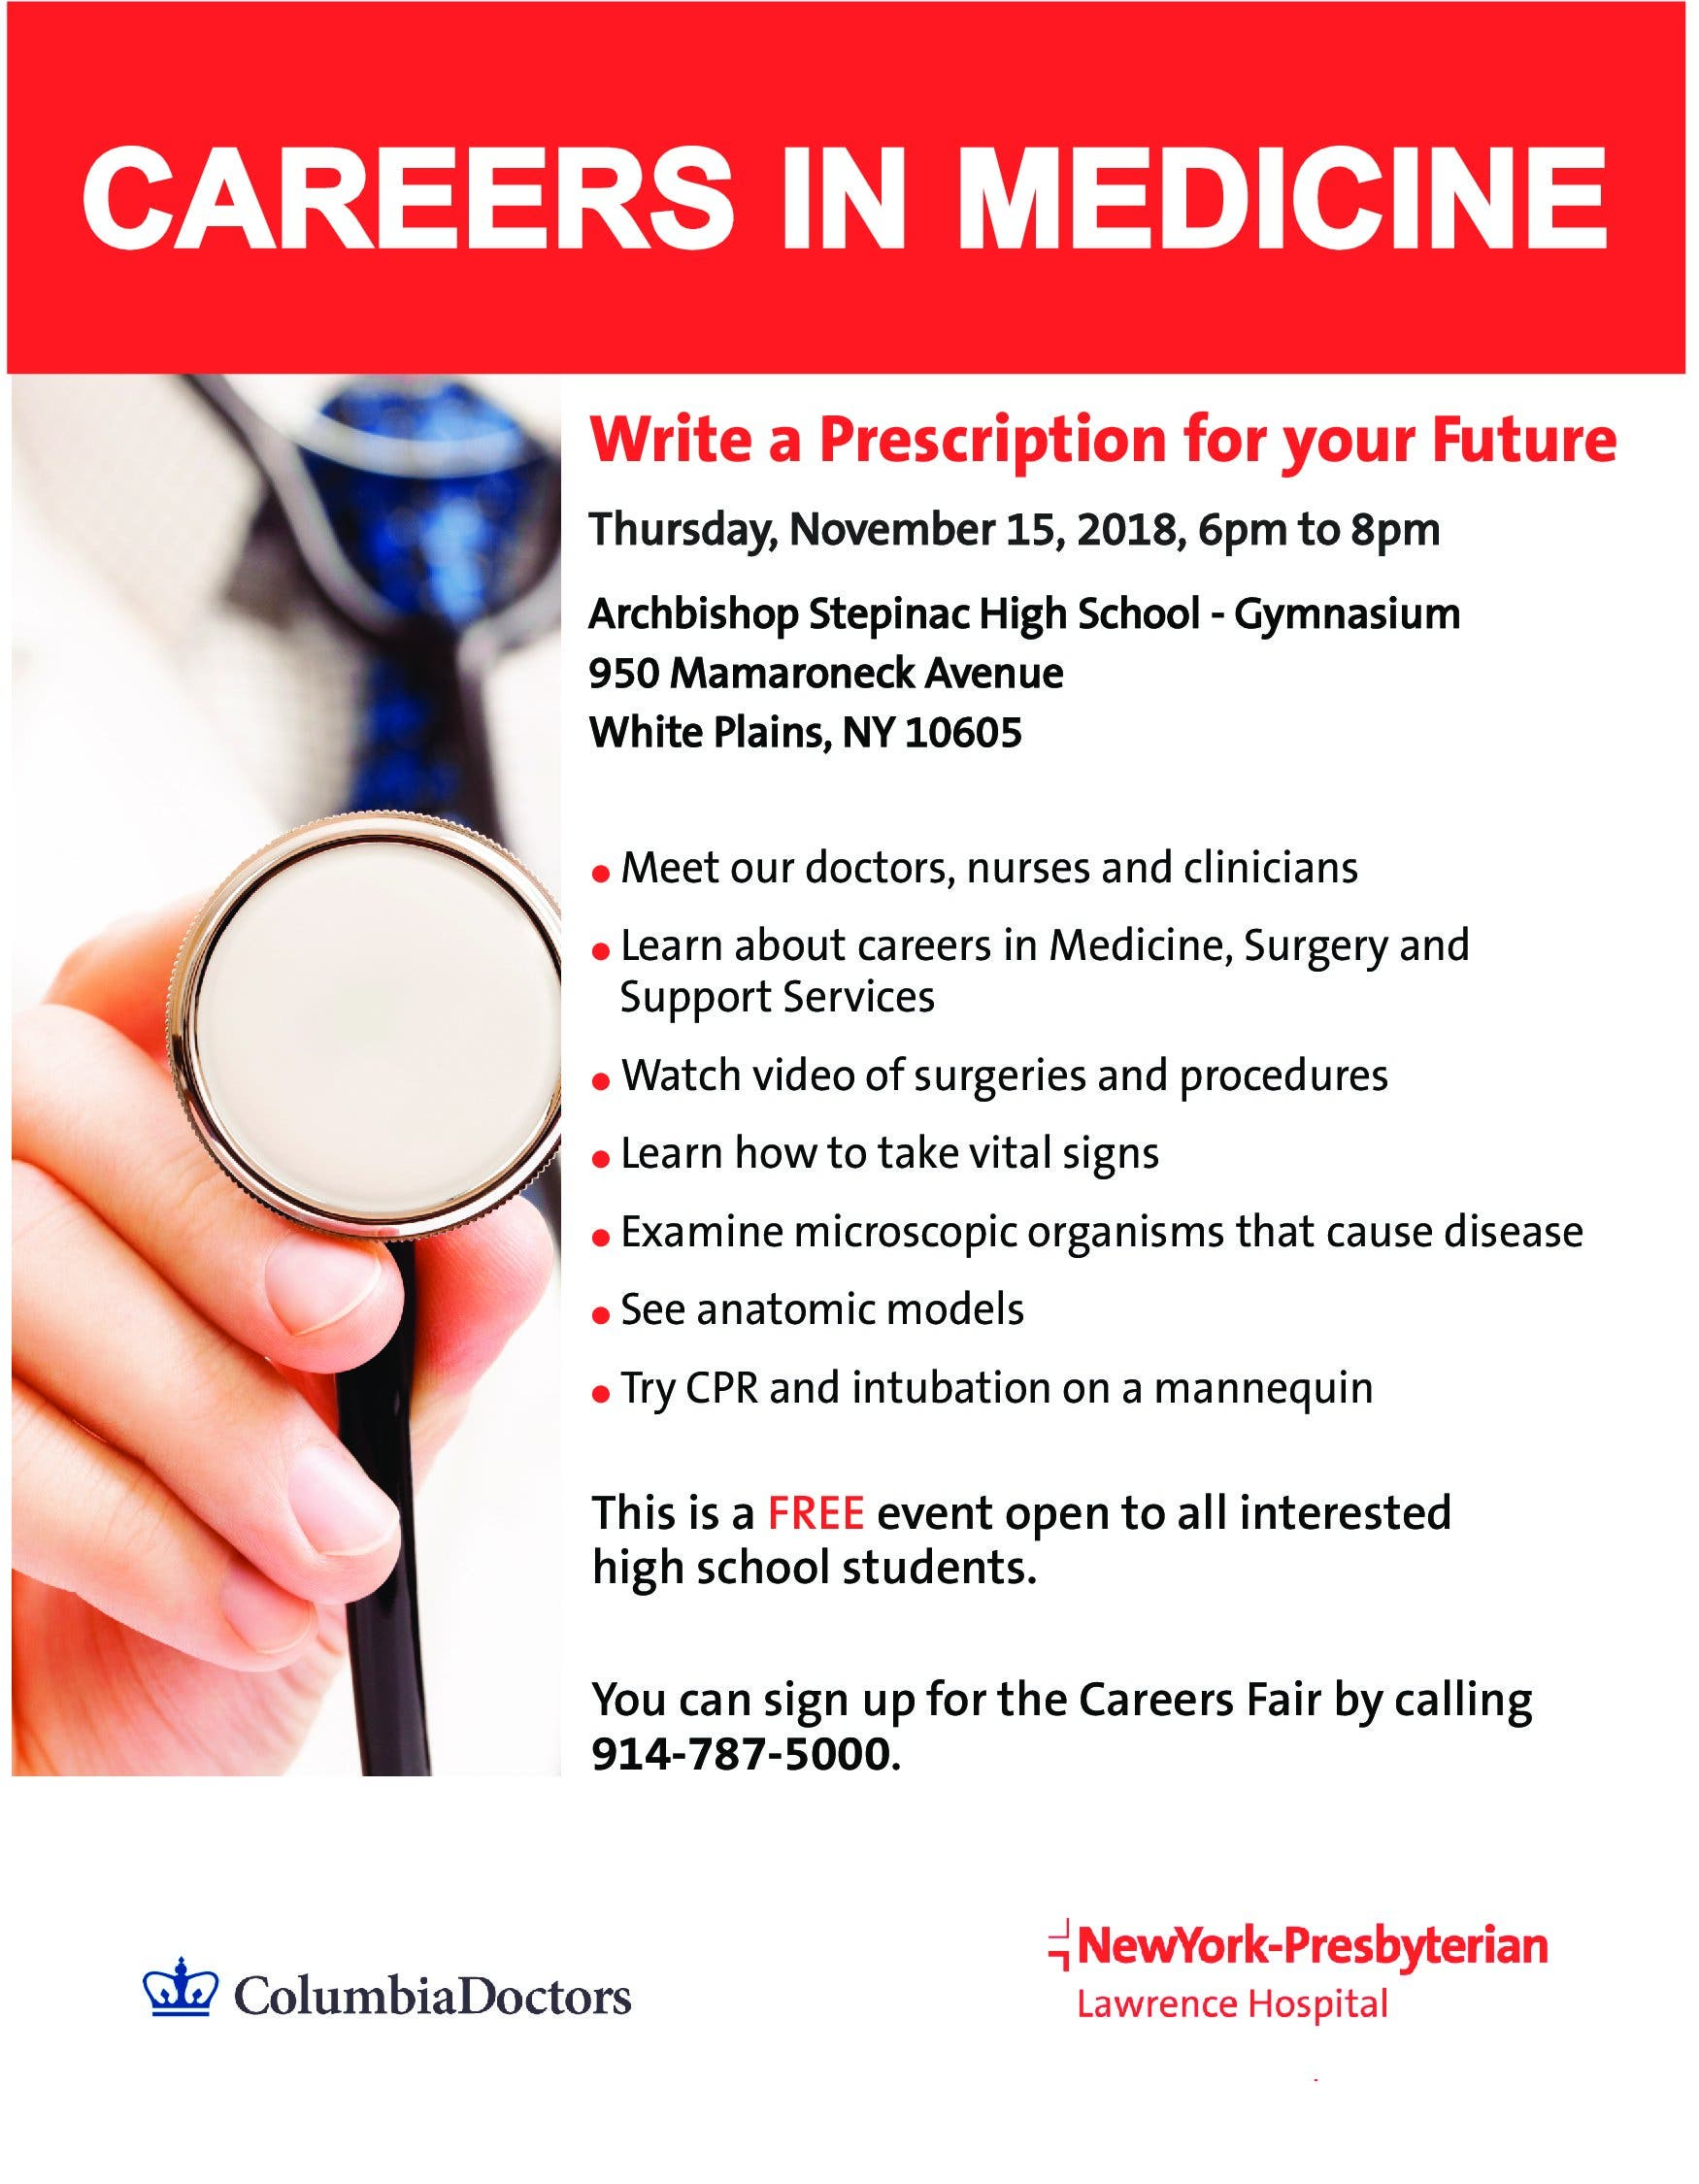 Nov 15 | Careers in Medicine Event for Local High School Students